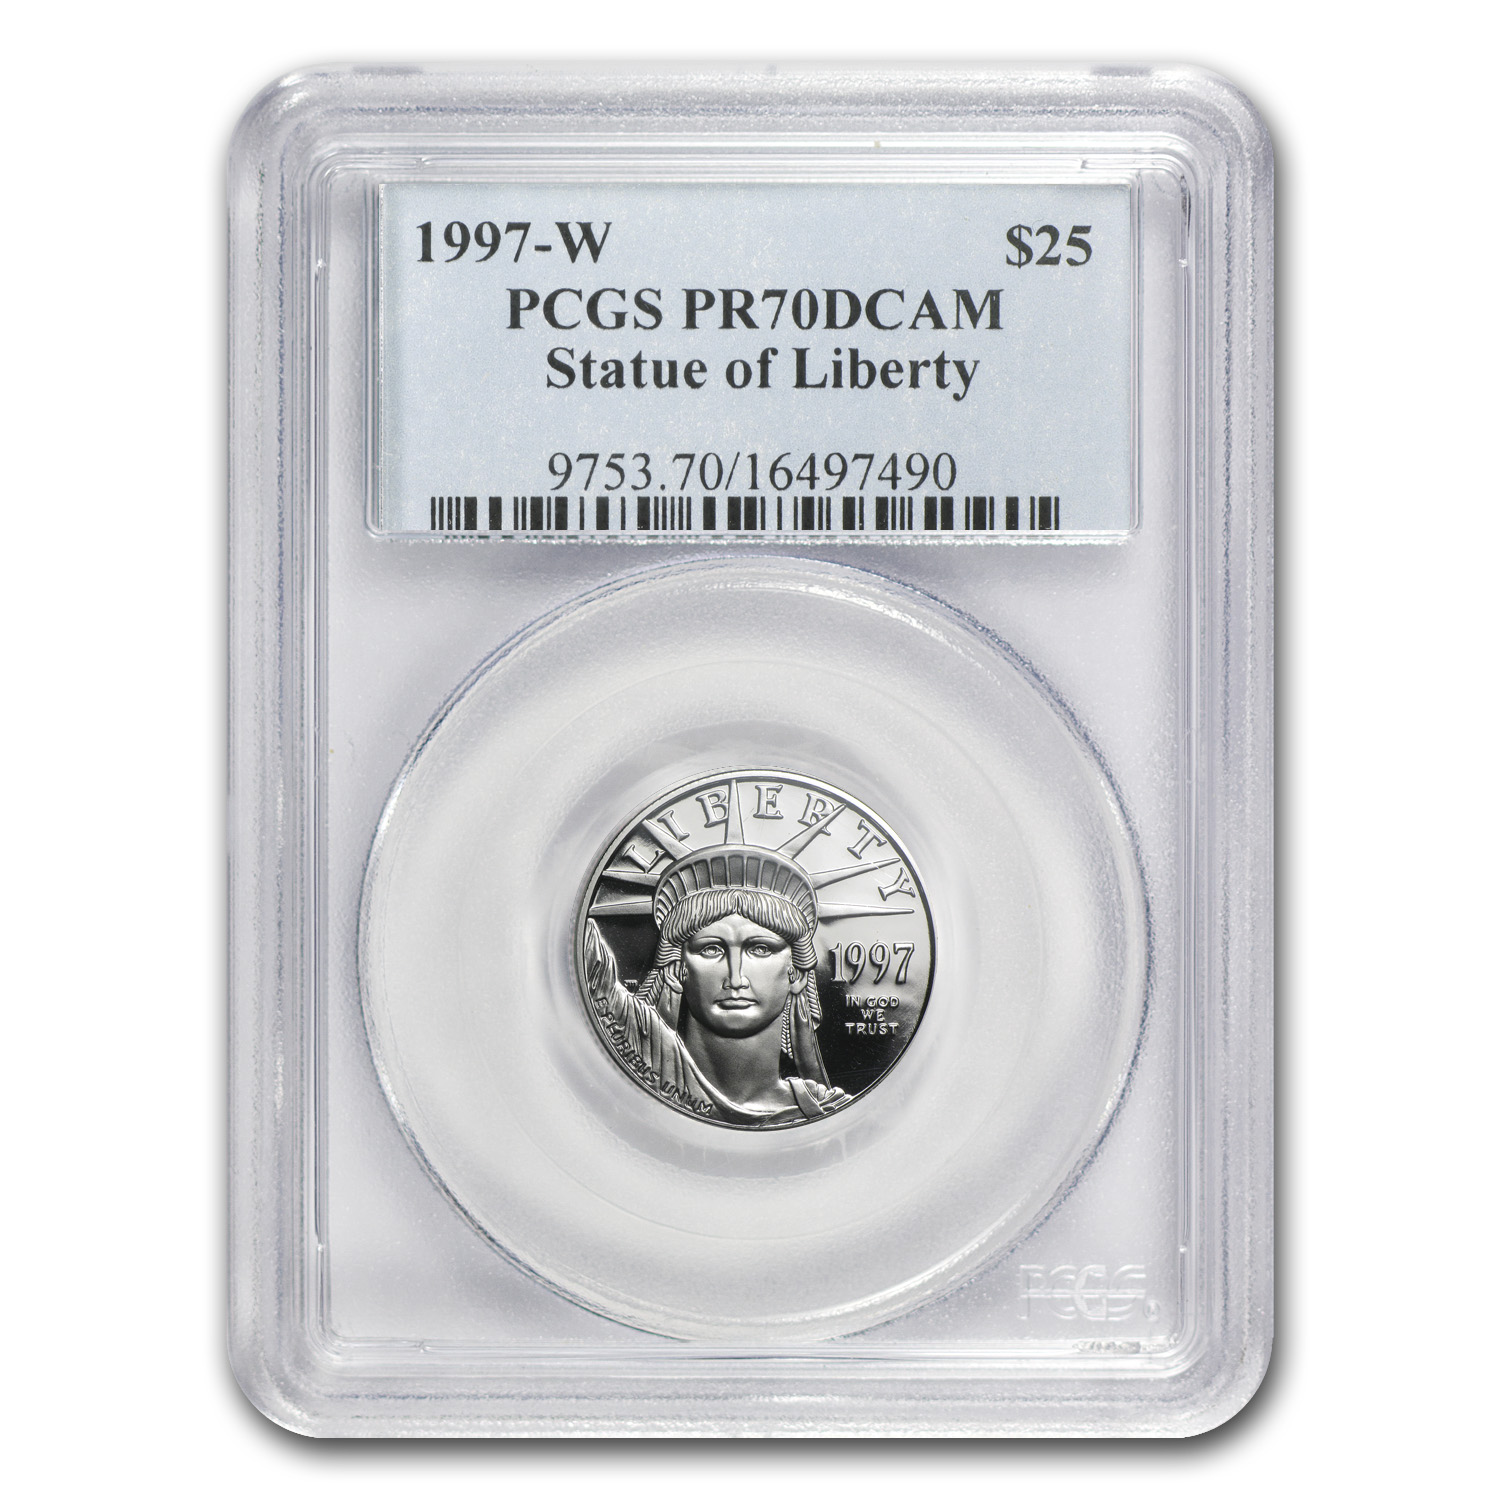 1997-W 4-Coin Proof Platinum American Eagle Set PR-70 PCGS